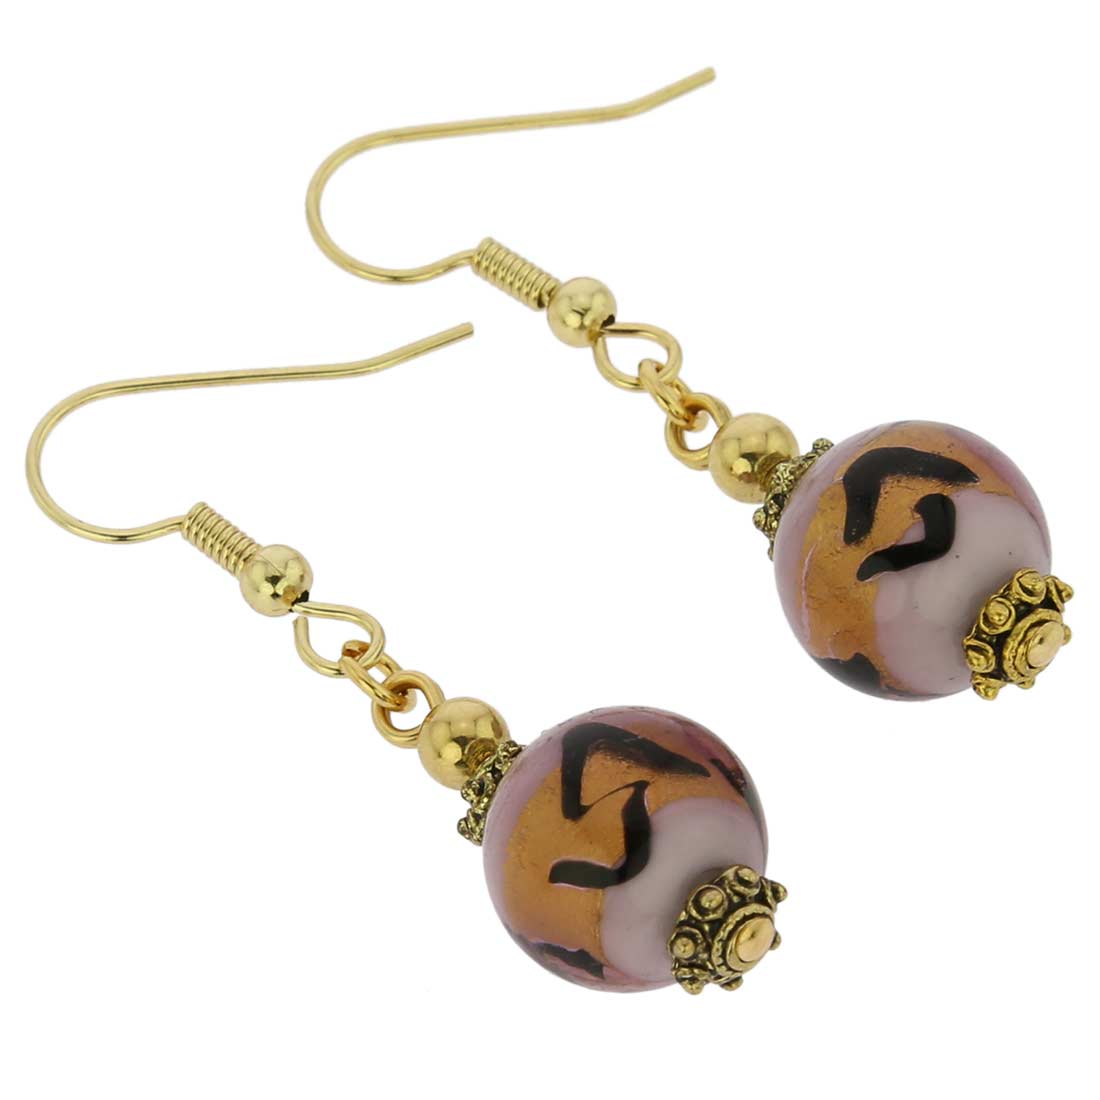 Antico Tesoro Balls Earrings - Lavender Gold